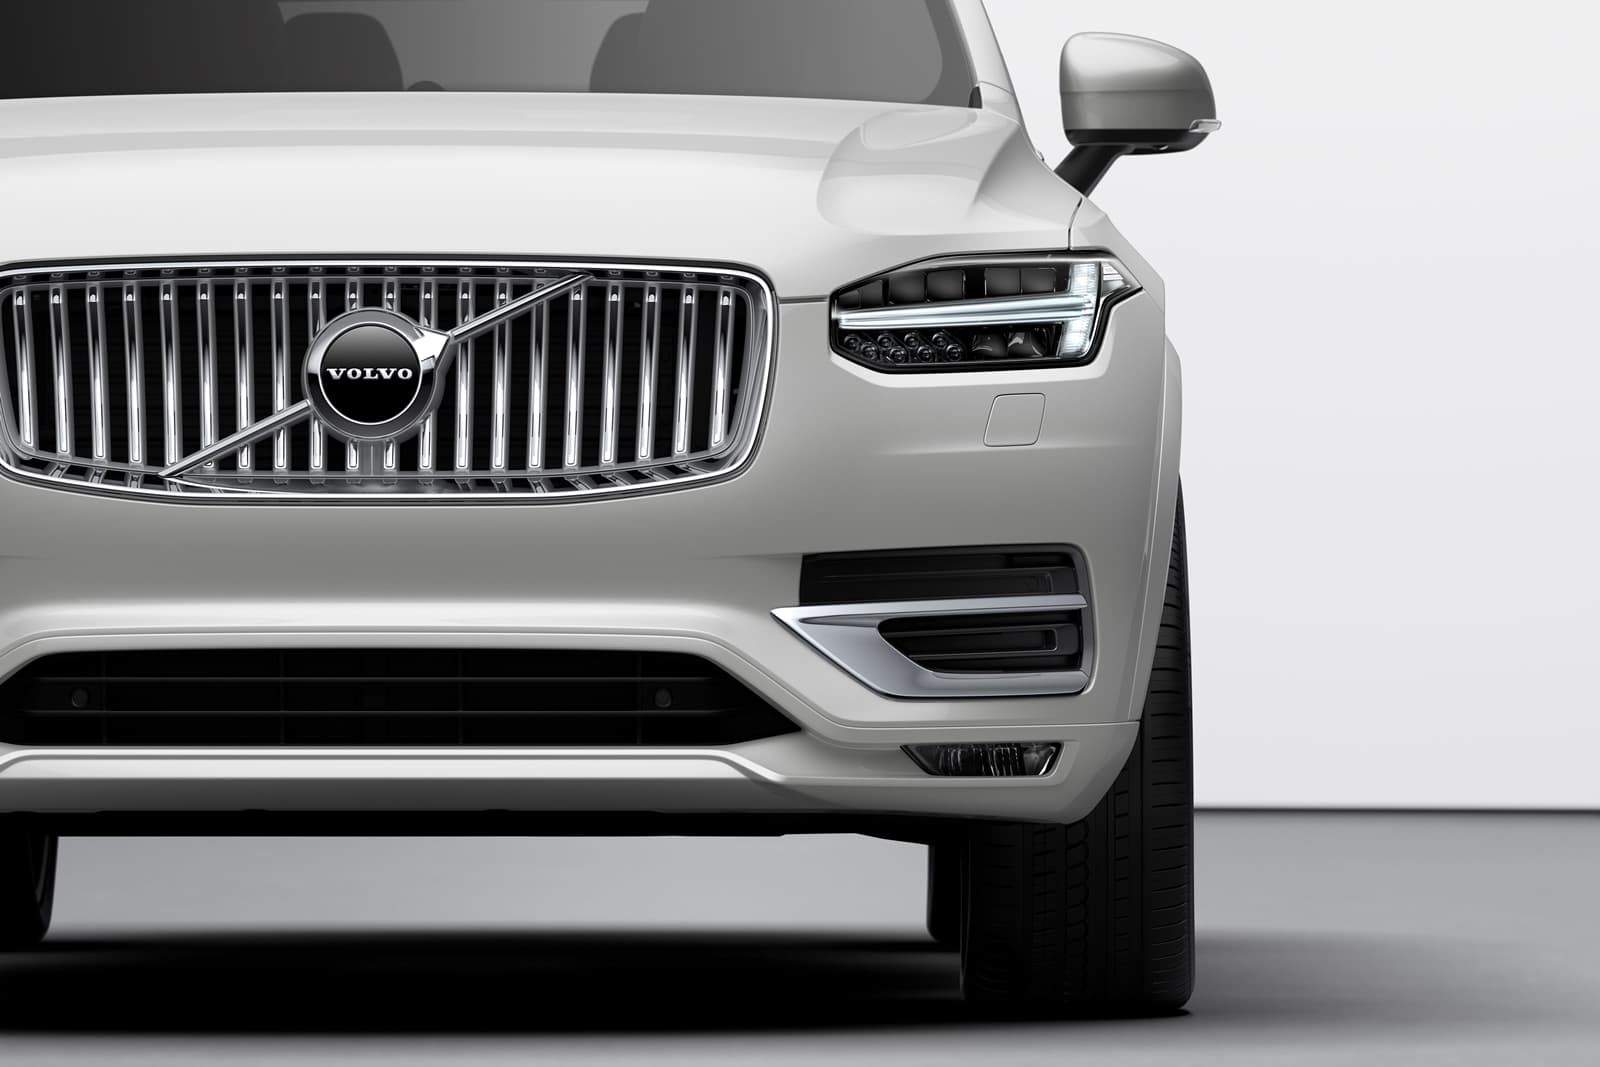 The New Volvo Xc90 Inscription T8 Twin Engine In Birch Light Metallic